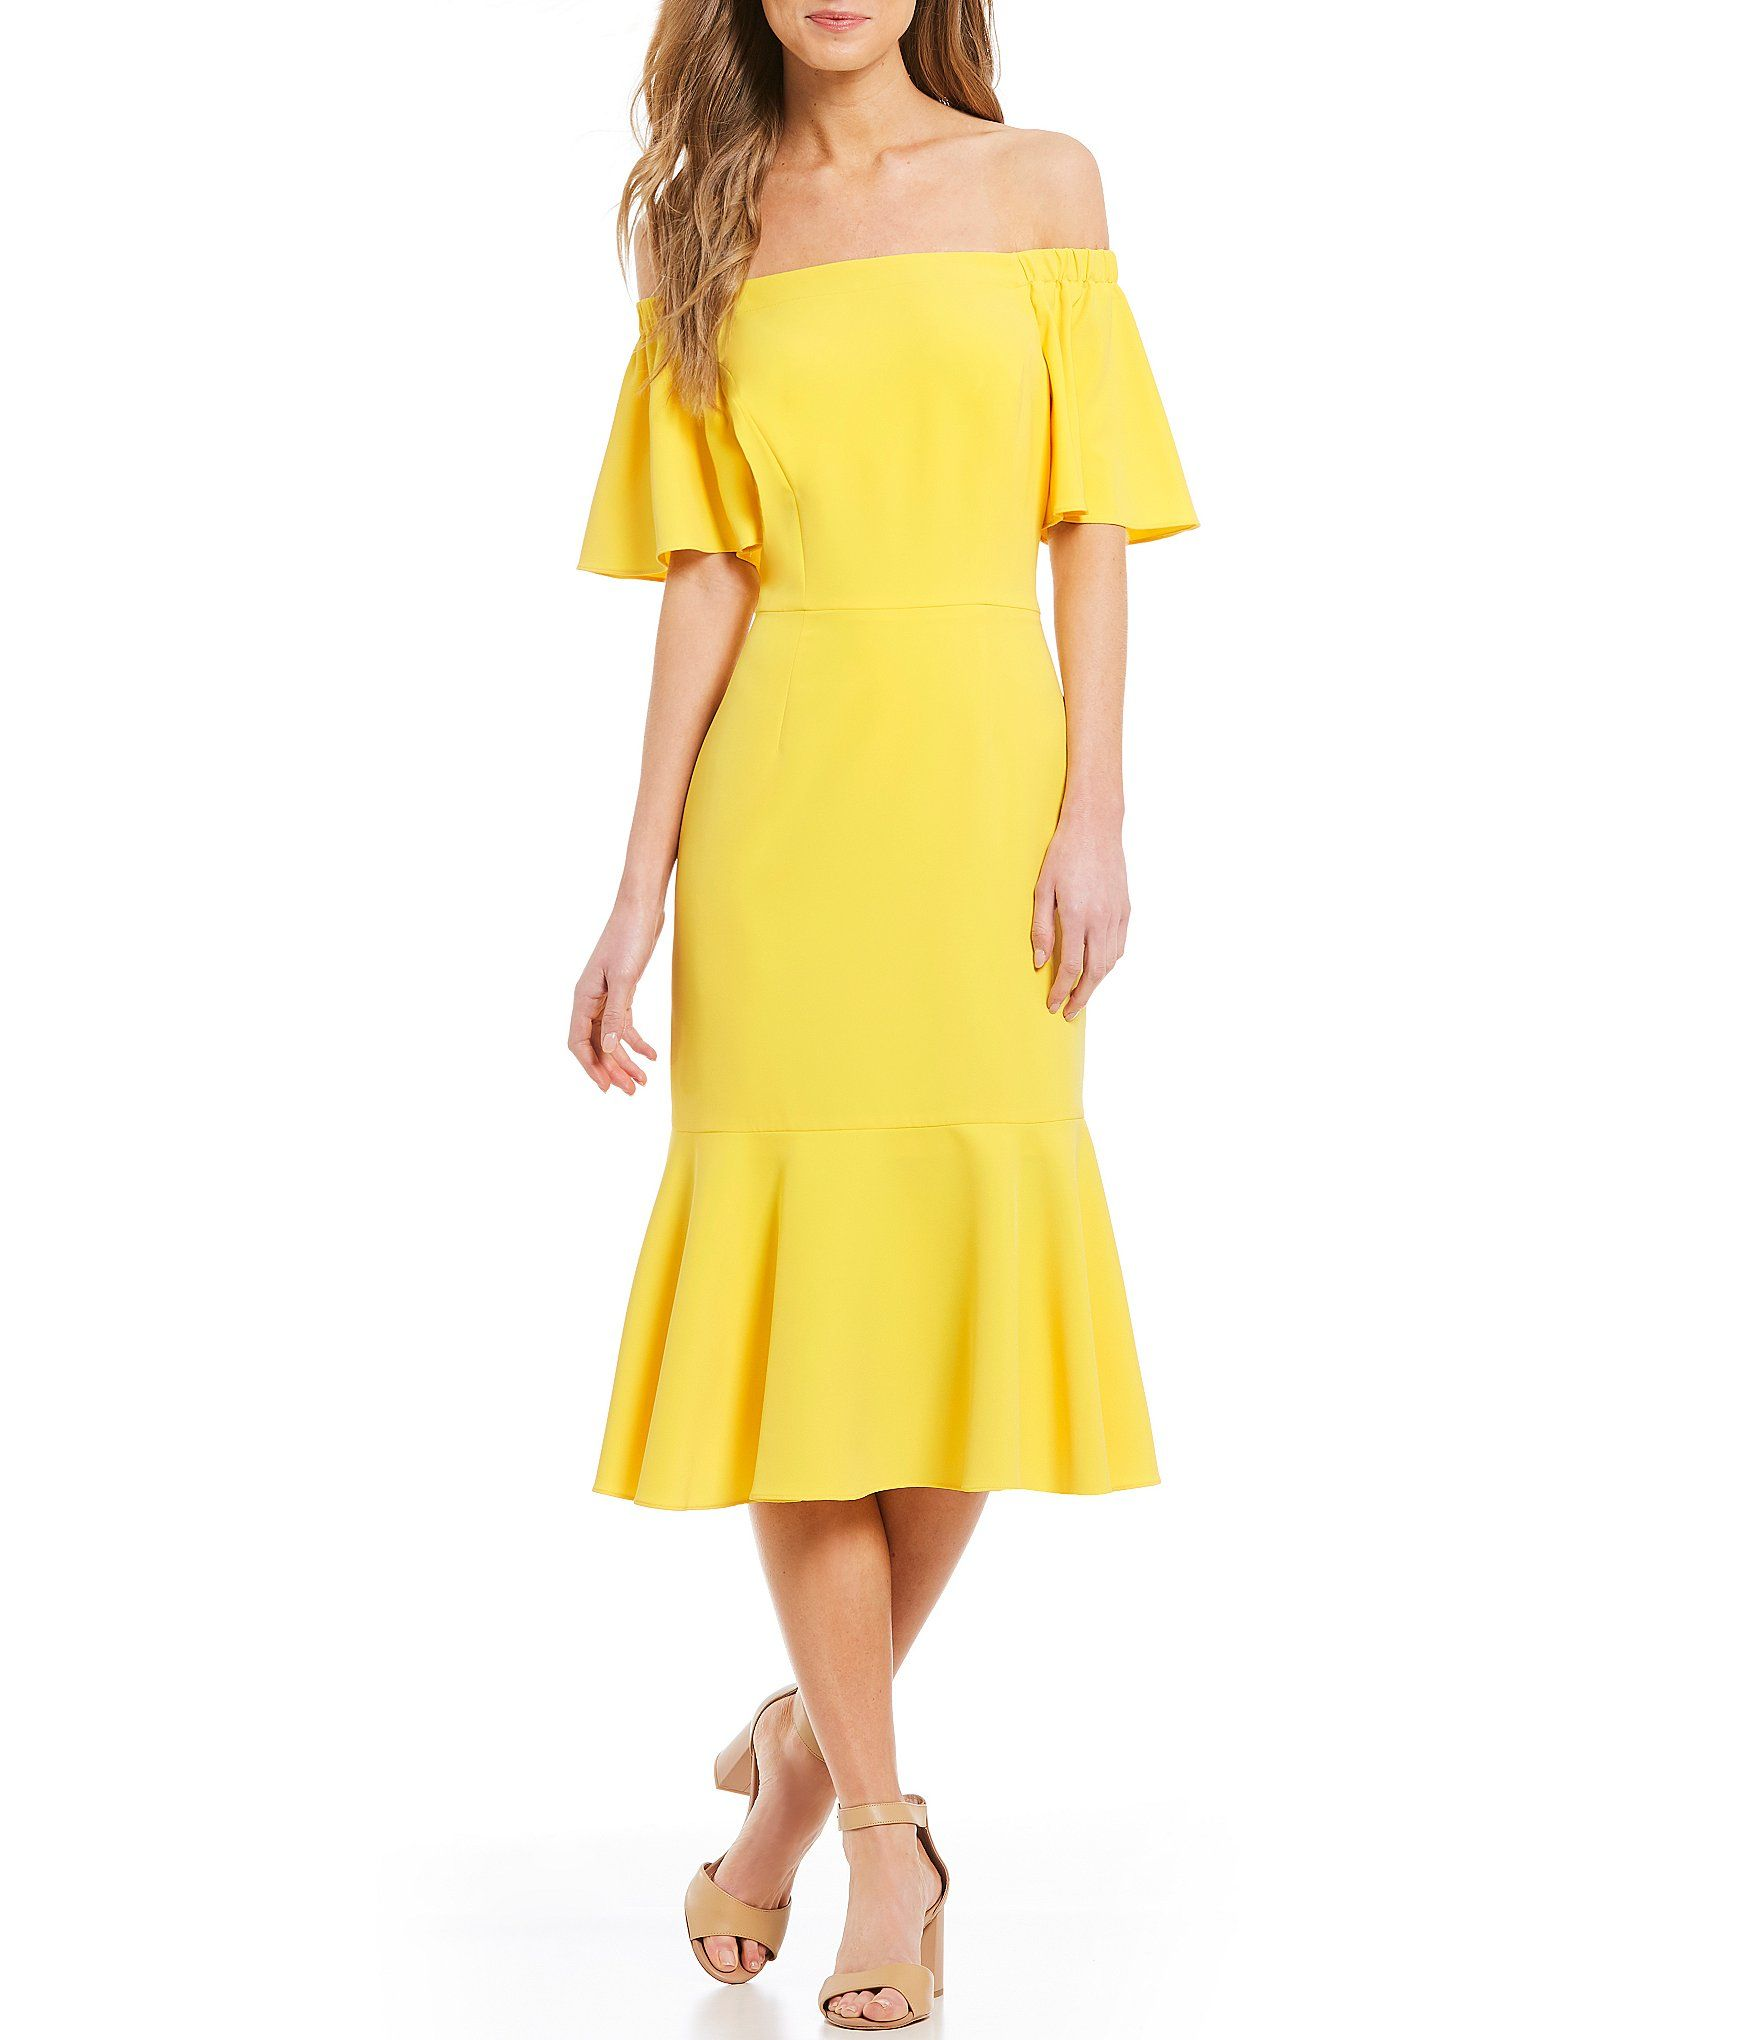 e767cbe068 Antonio Melani Dresses At Dillards - Gomes Weine AG